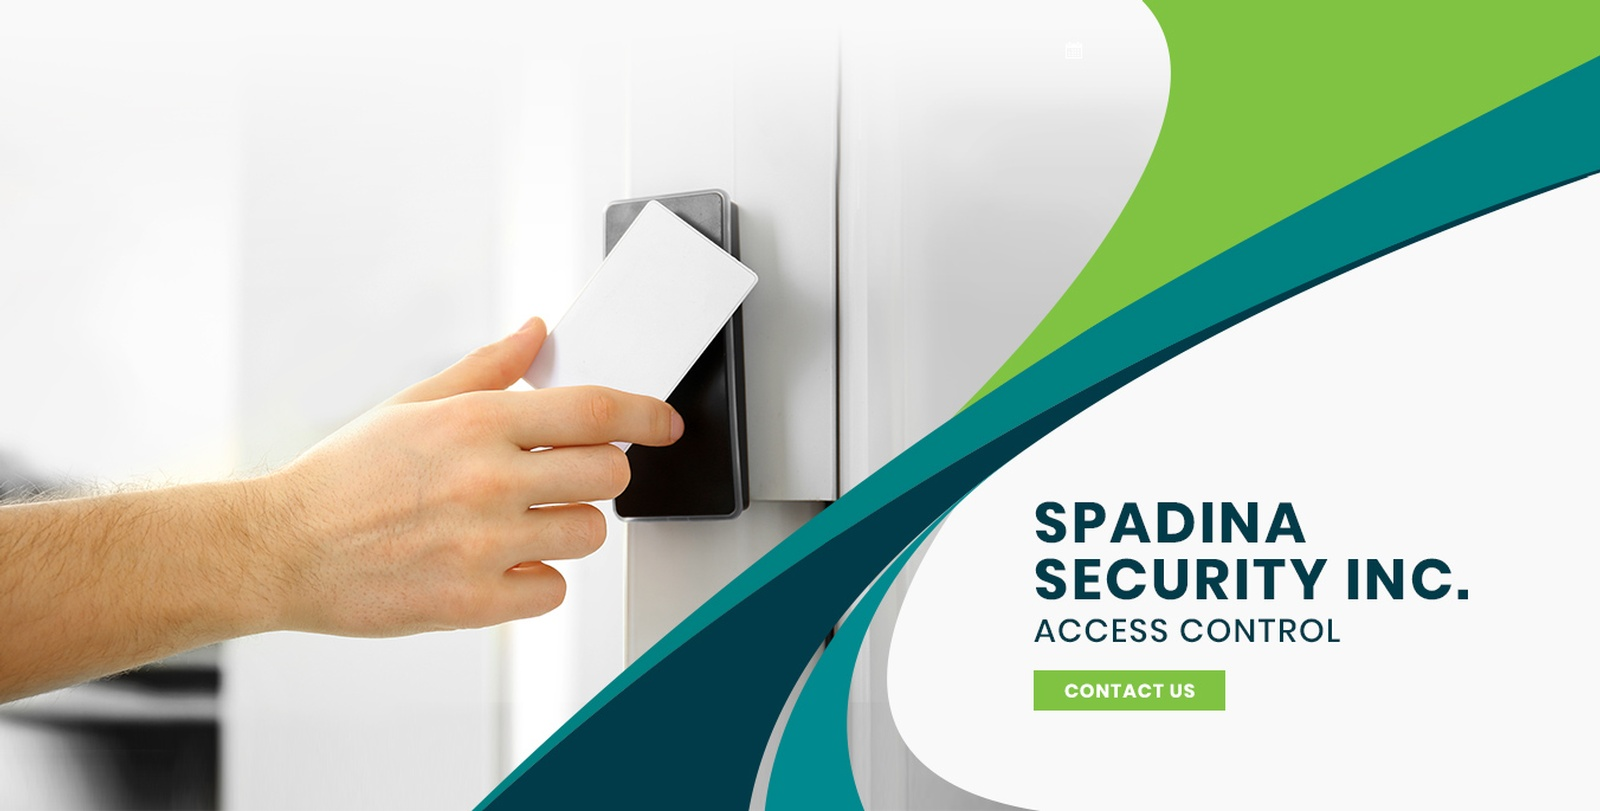 Spadina Security Inc